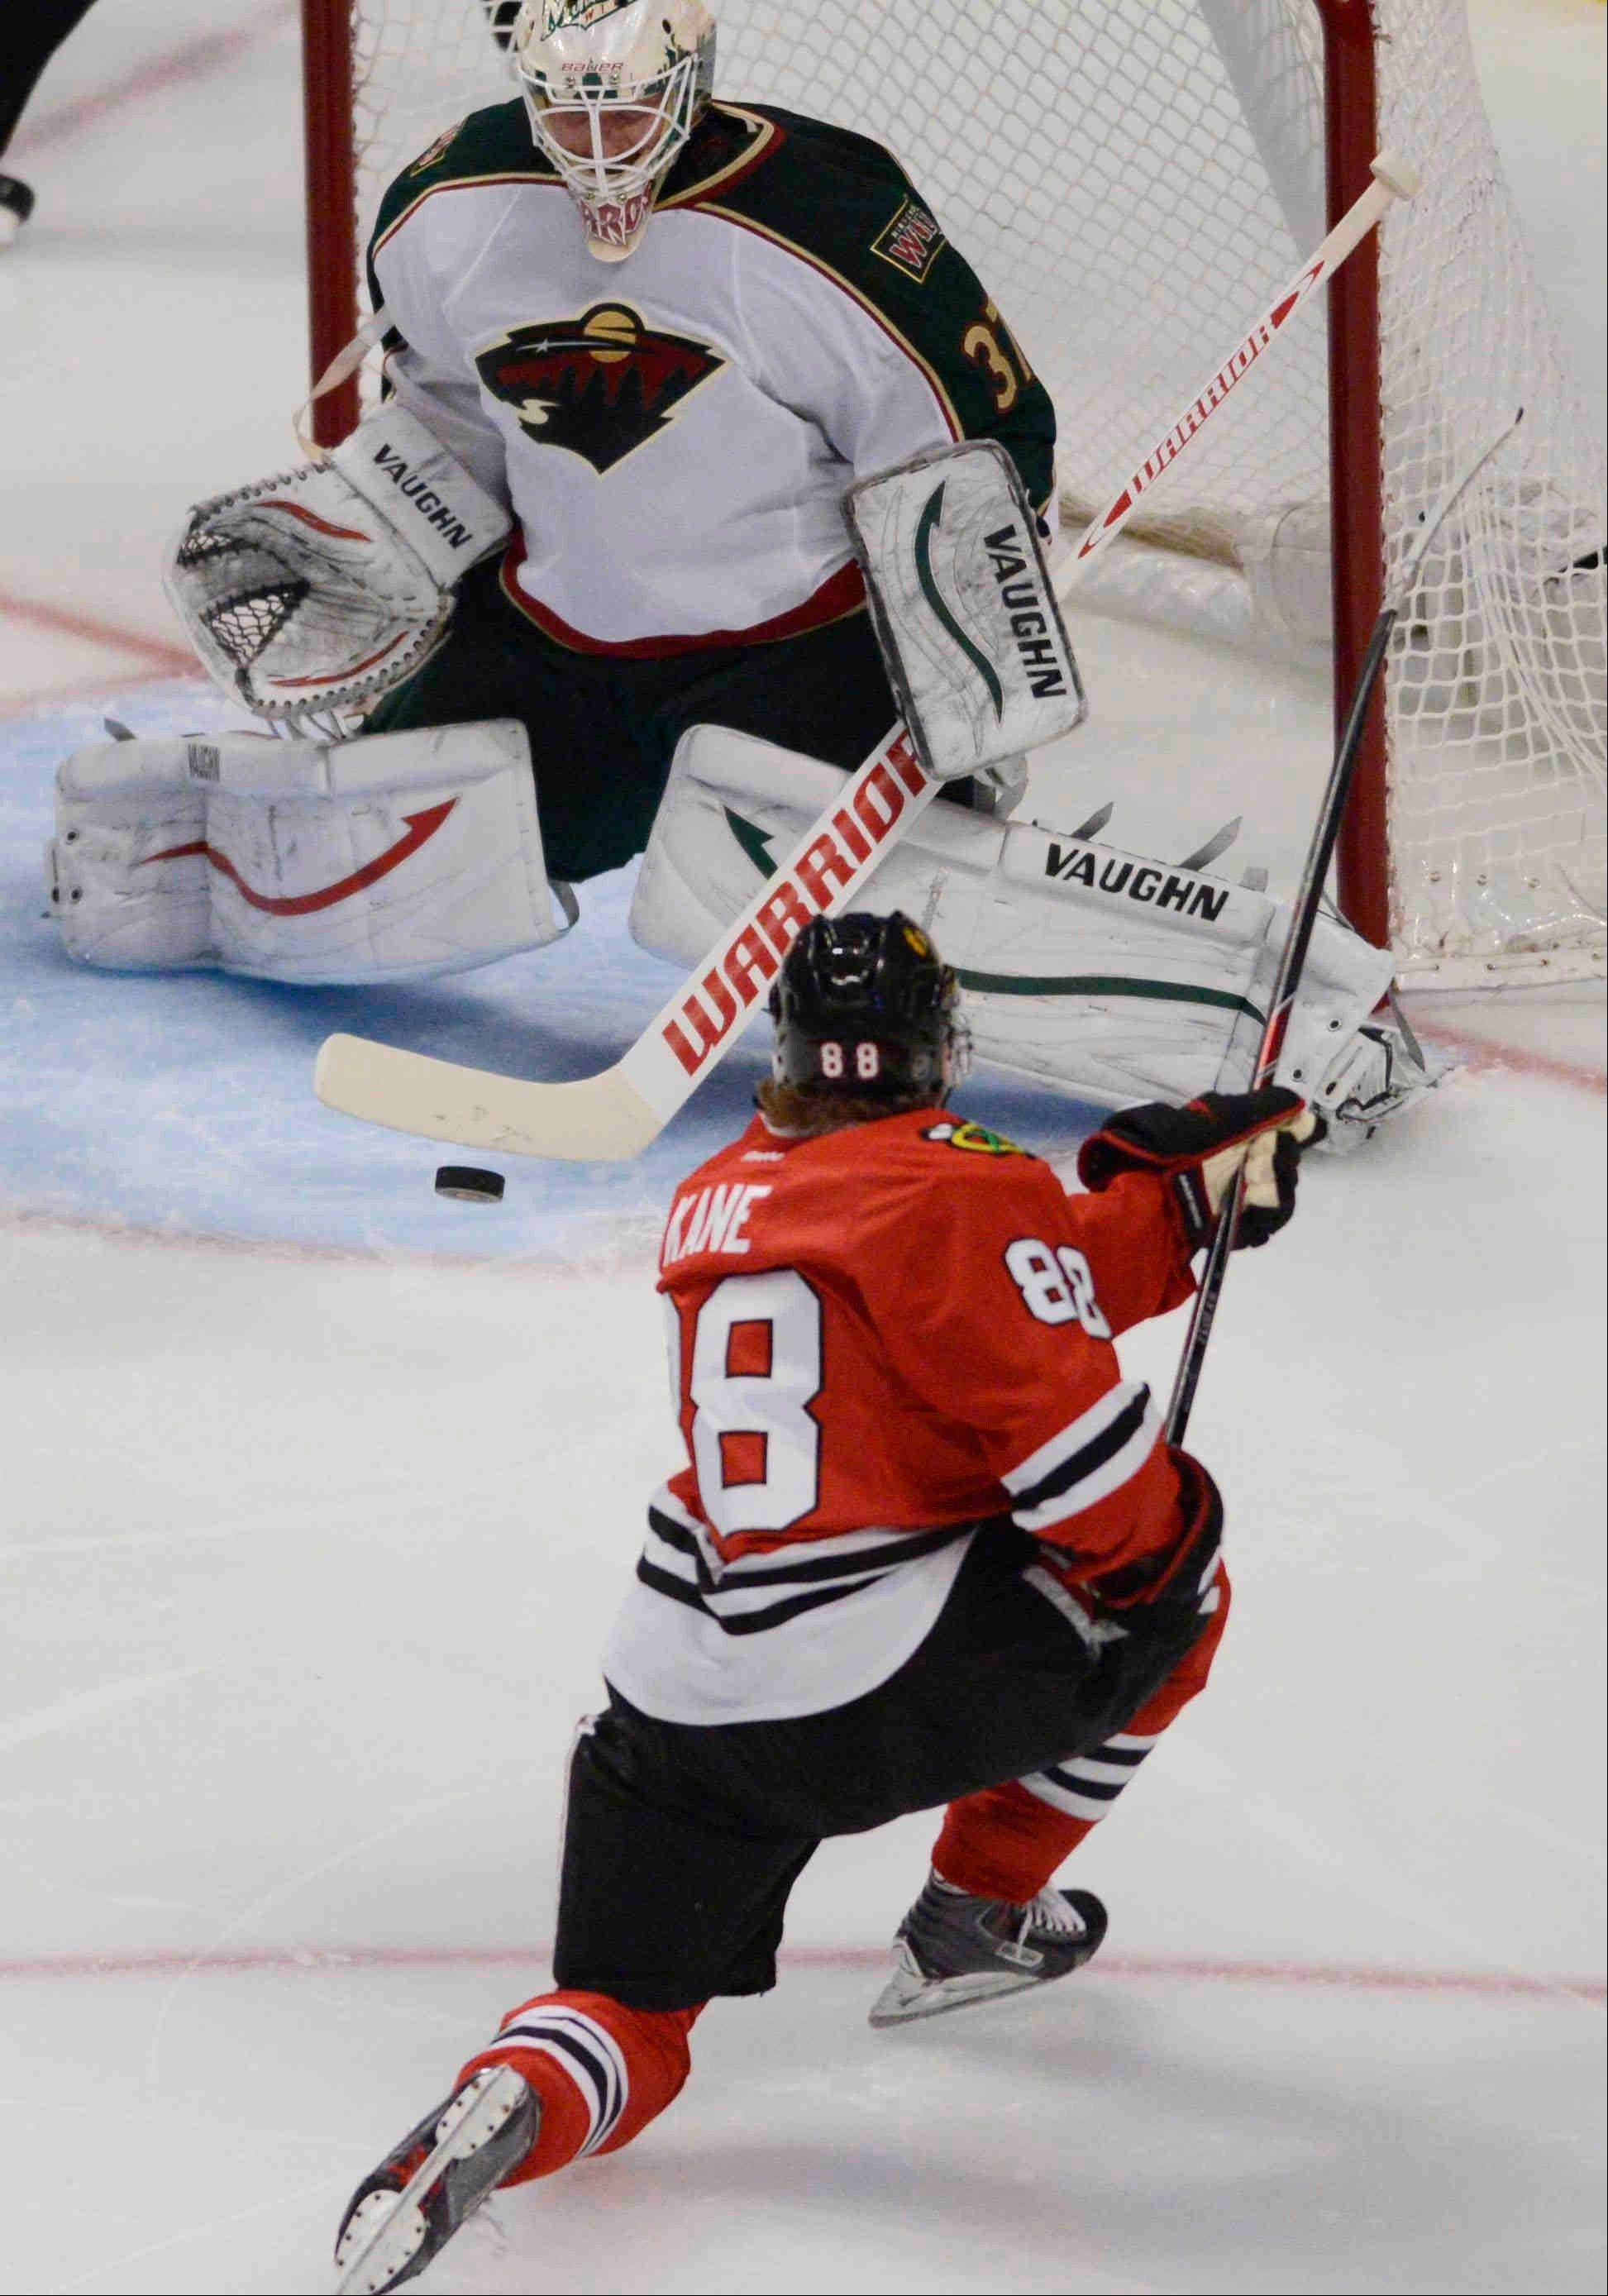 Blackhawks star Patrick Kane has compiled a highlight reel of dazzling assists during his career.